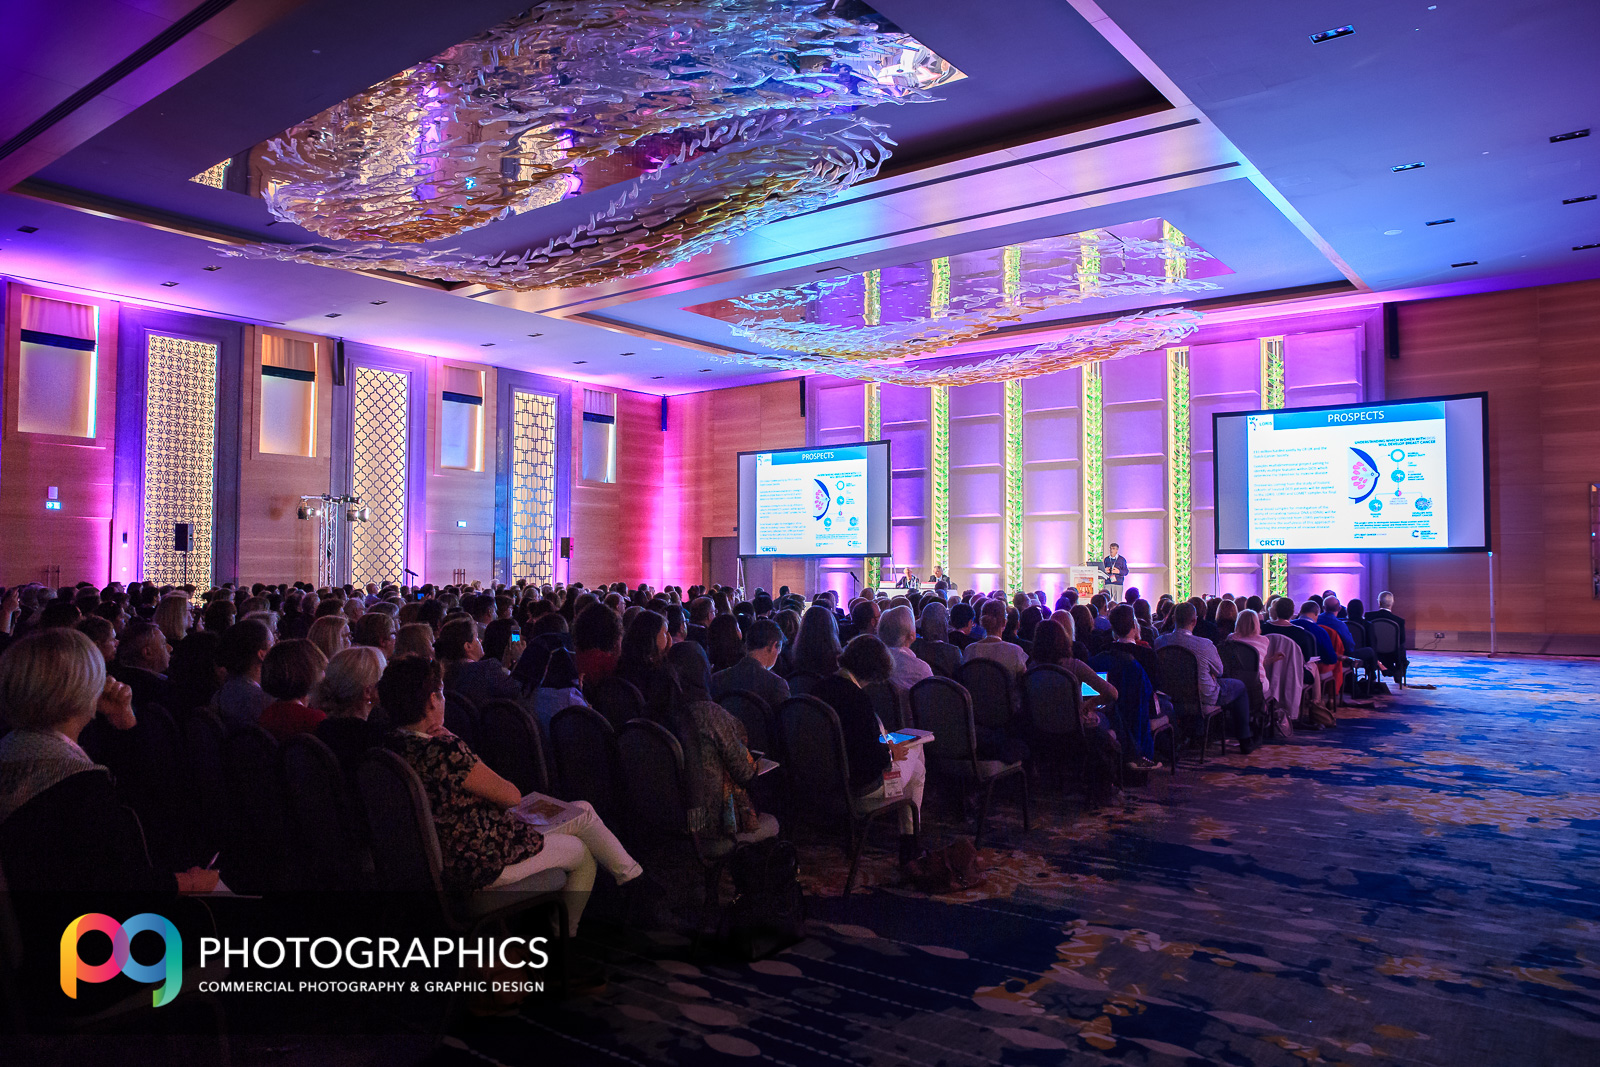 conference-event-photography-edinburgh-glasgow-berlin-12.jpg